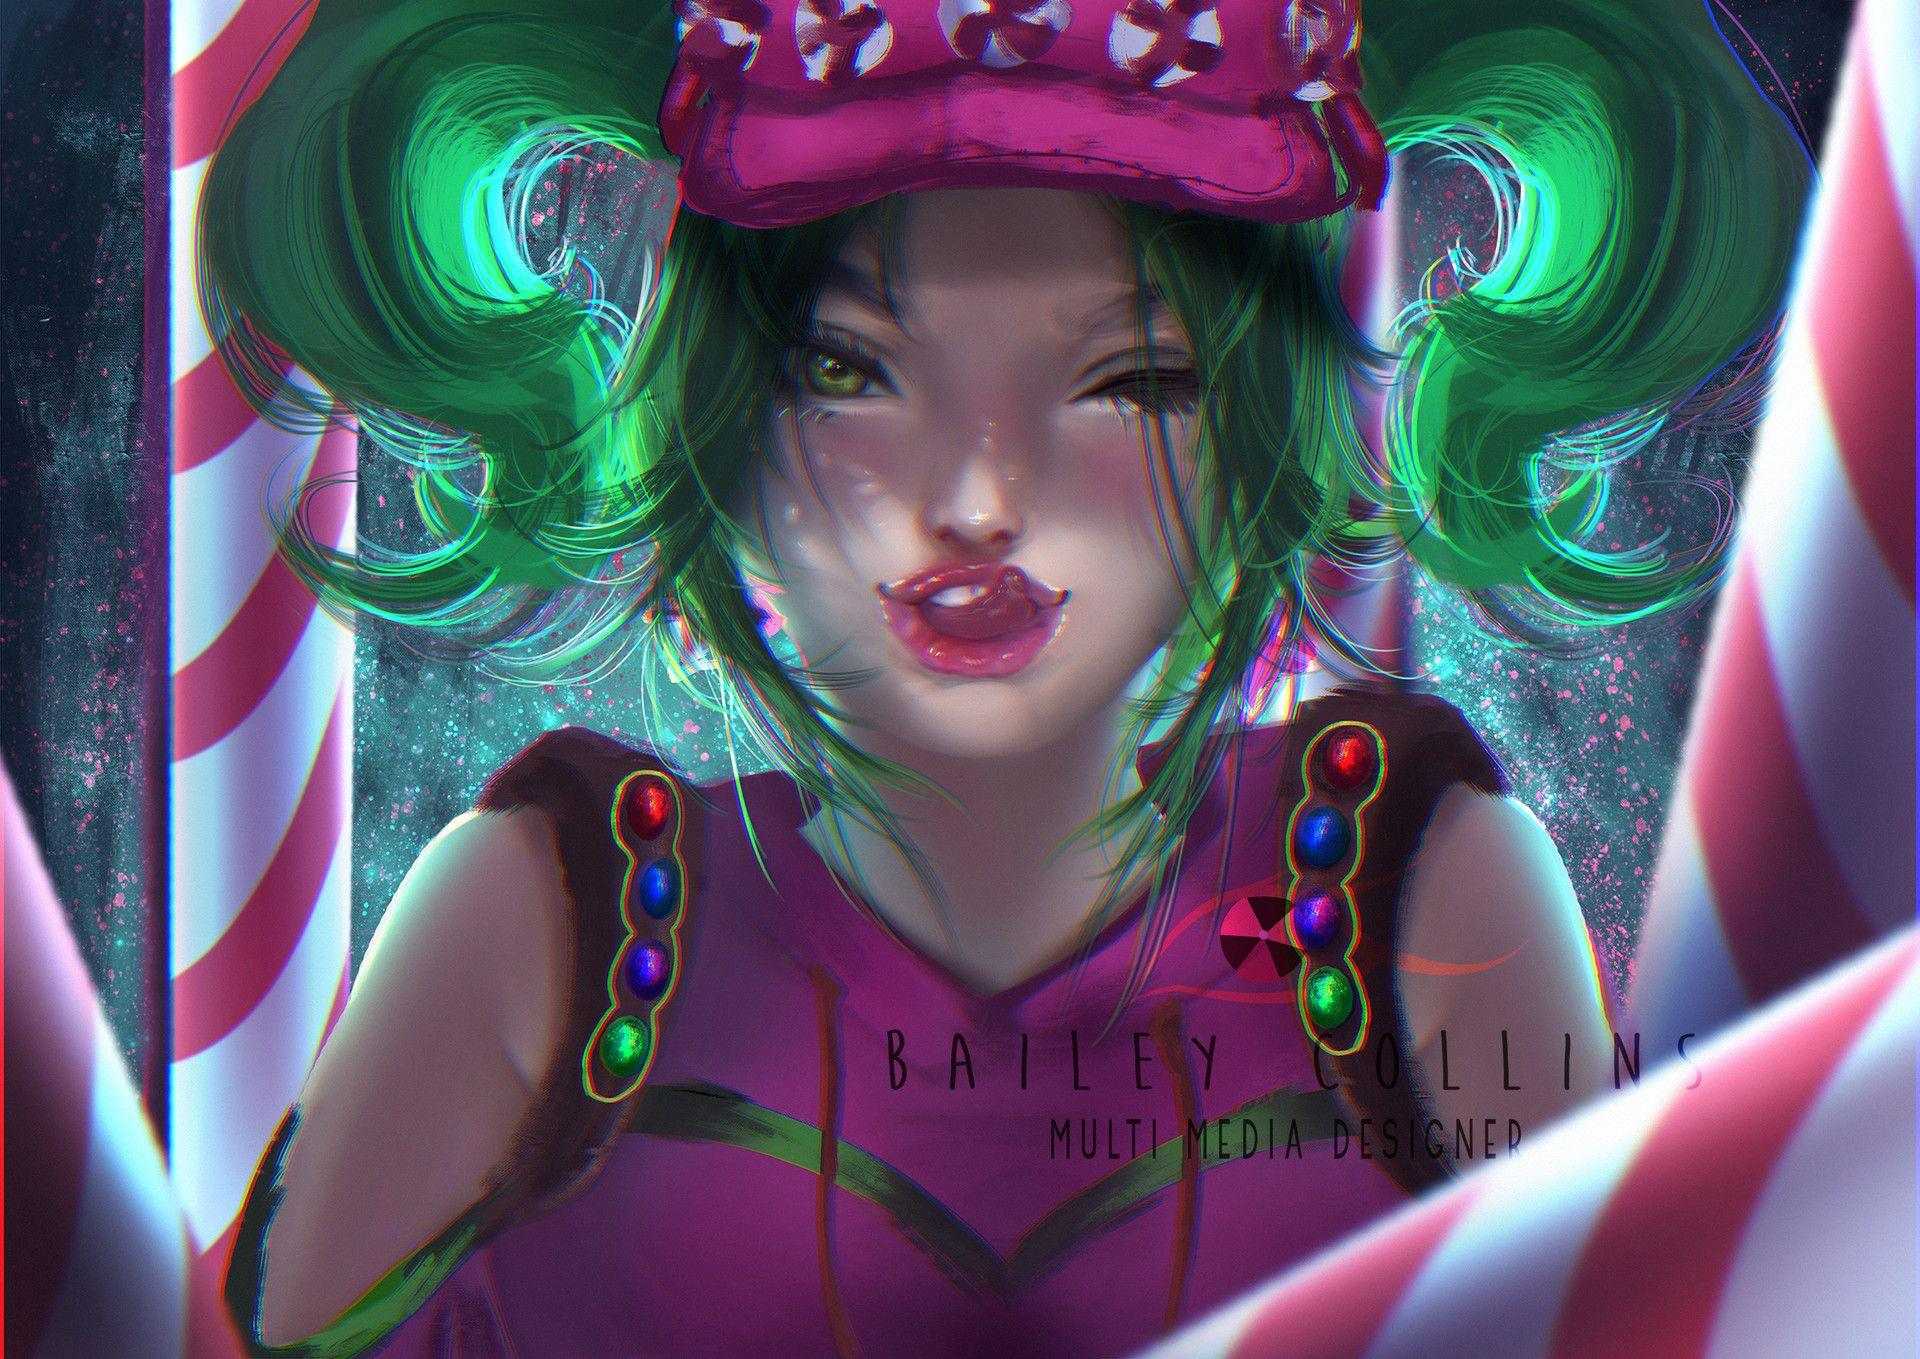 Zoey Fortnite Best Wallpaper by Bailey Collins #4165 Wallpapers and ...